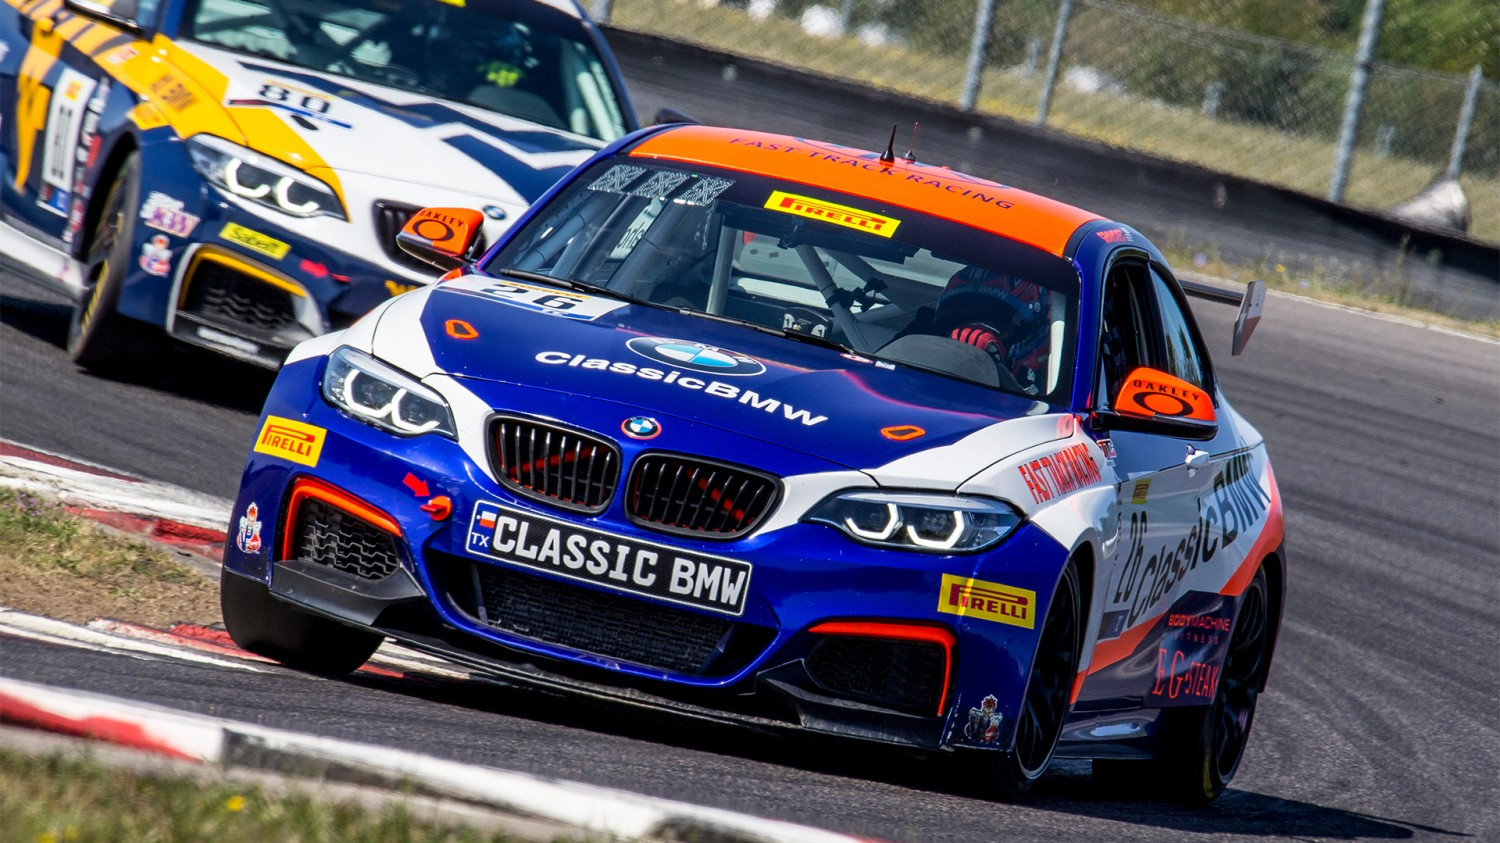 Grahovec Puts in Sensational TC Performance This Weekend at PIR,  But Results Don't Match the Classic BMW Driver's Pace